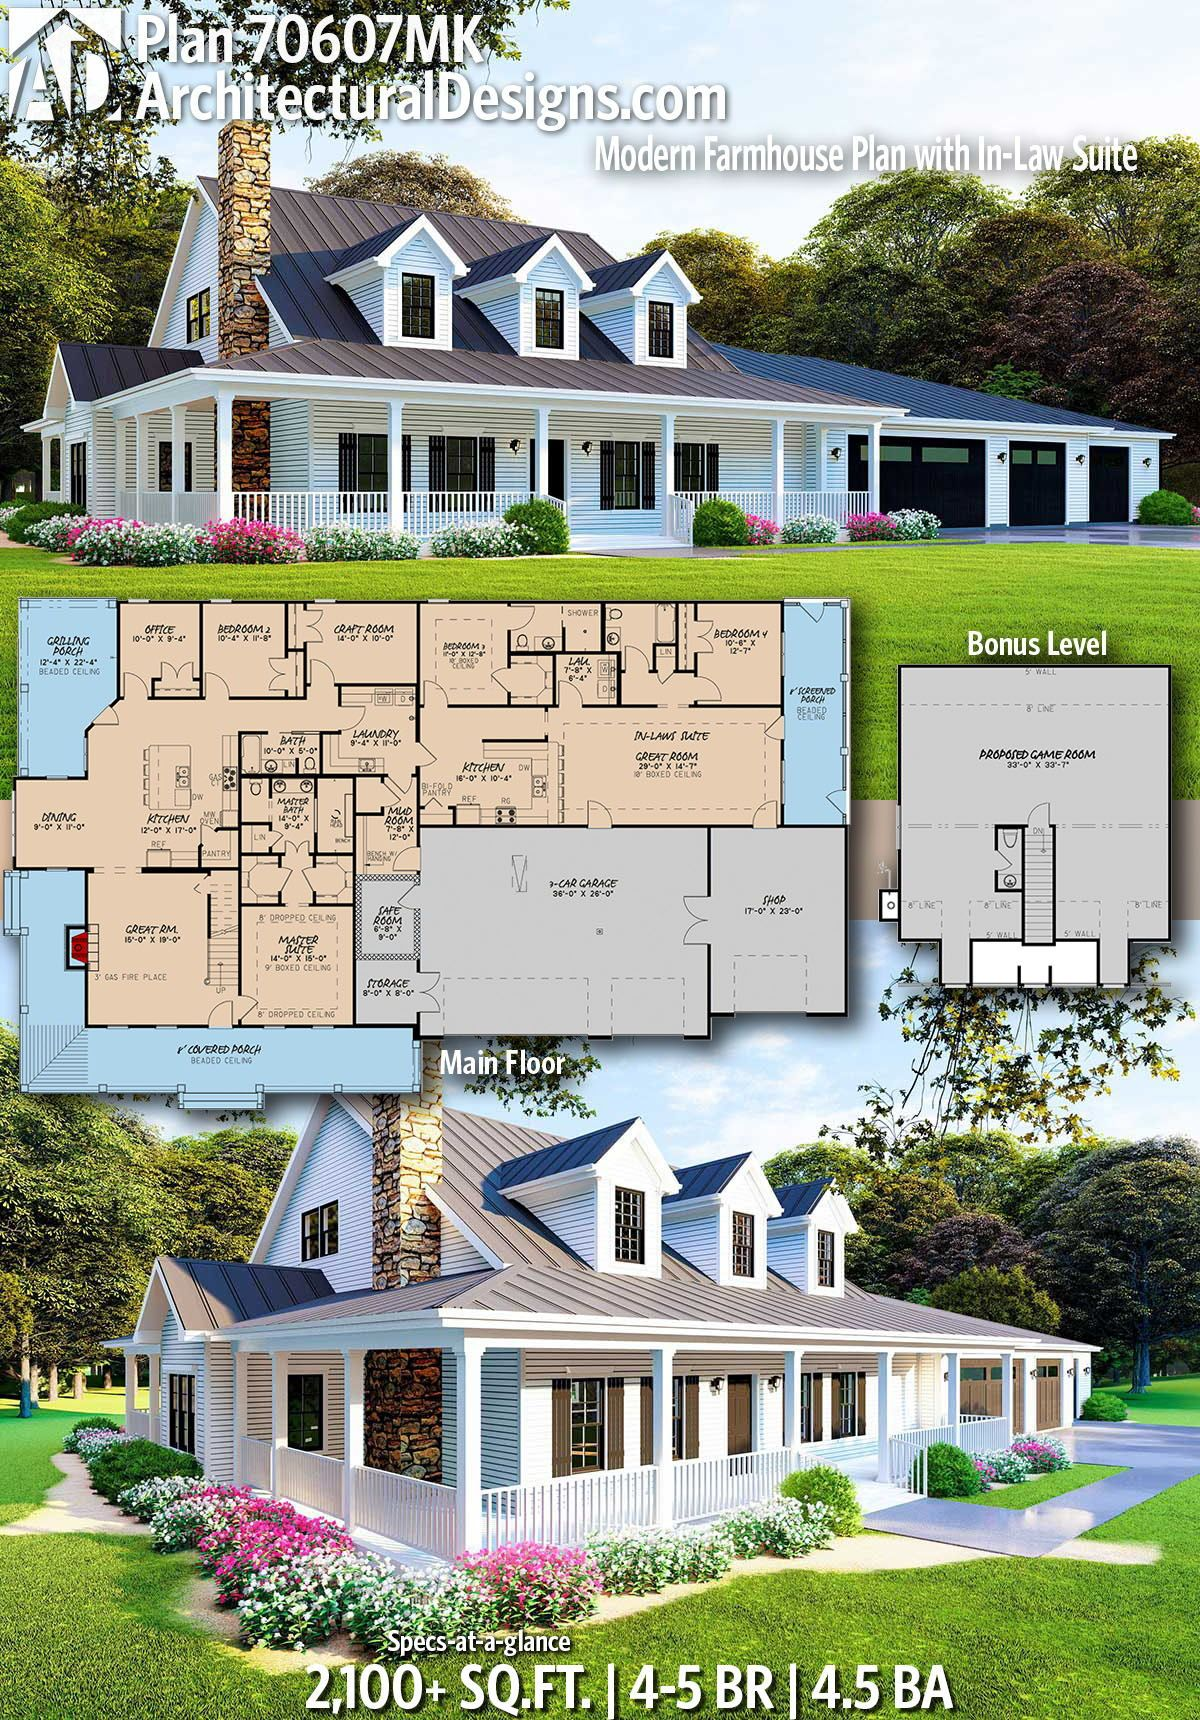 Plan 70607mk Modern Farmhouse Plan With In Law Suite Modern Farmhouse Plans Farmhouse Plans House Plans Farmhouse